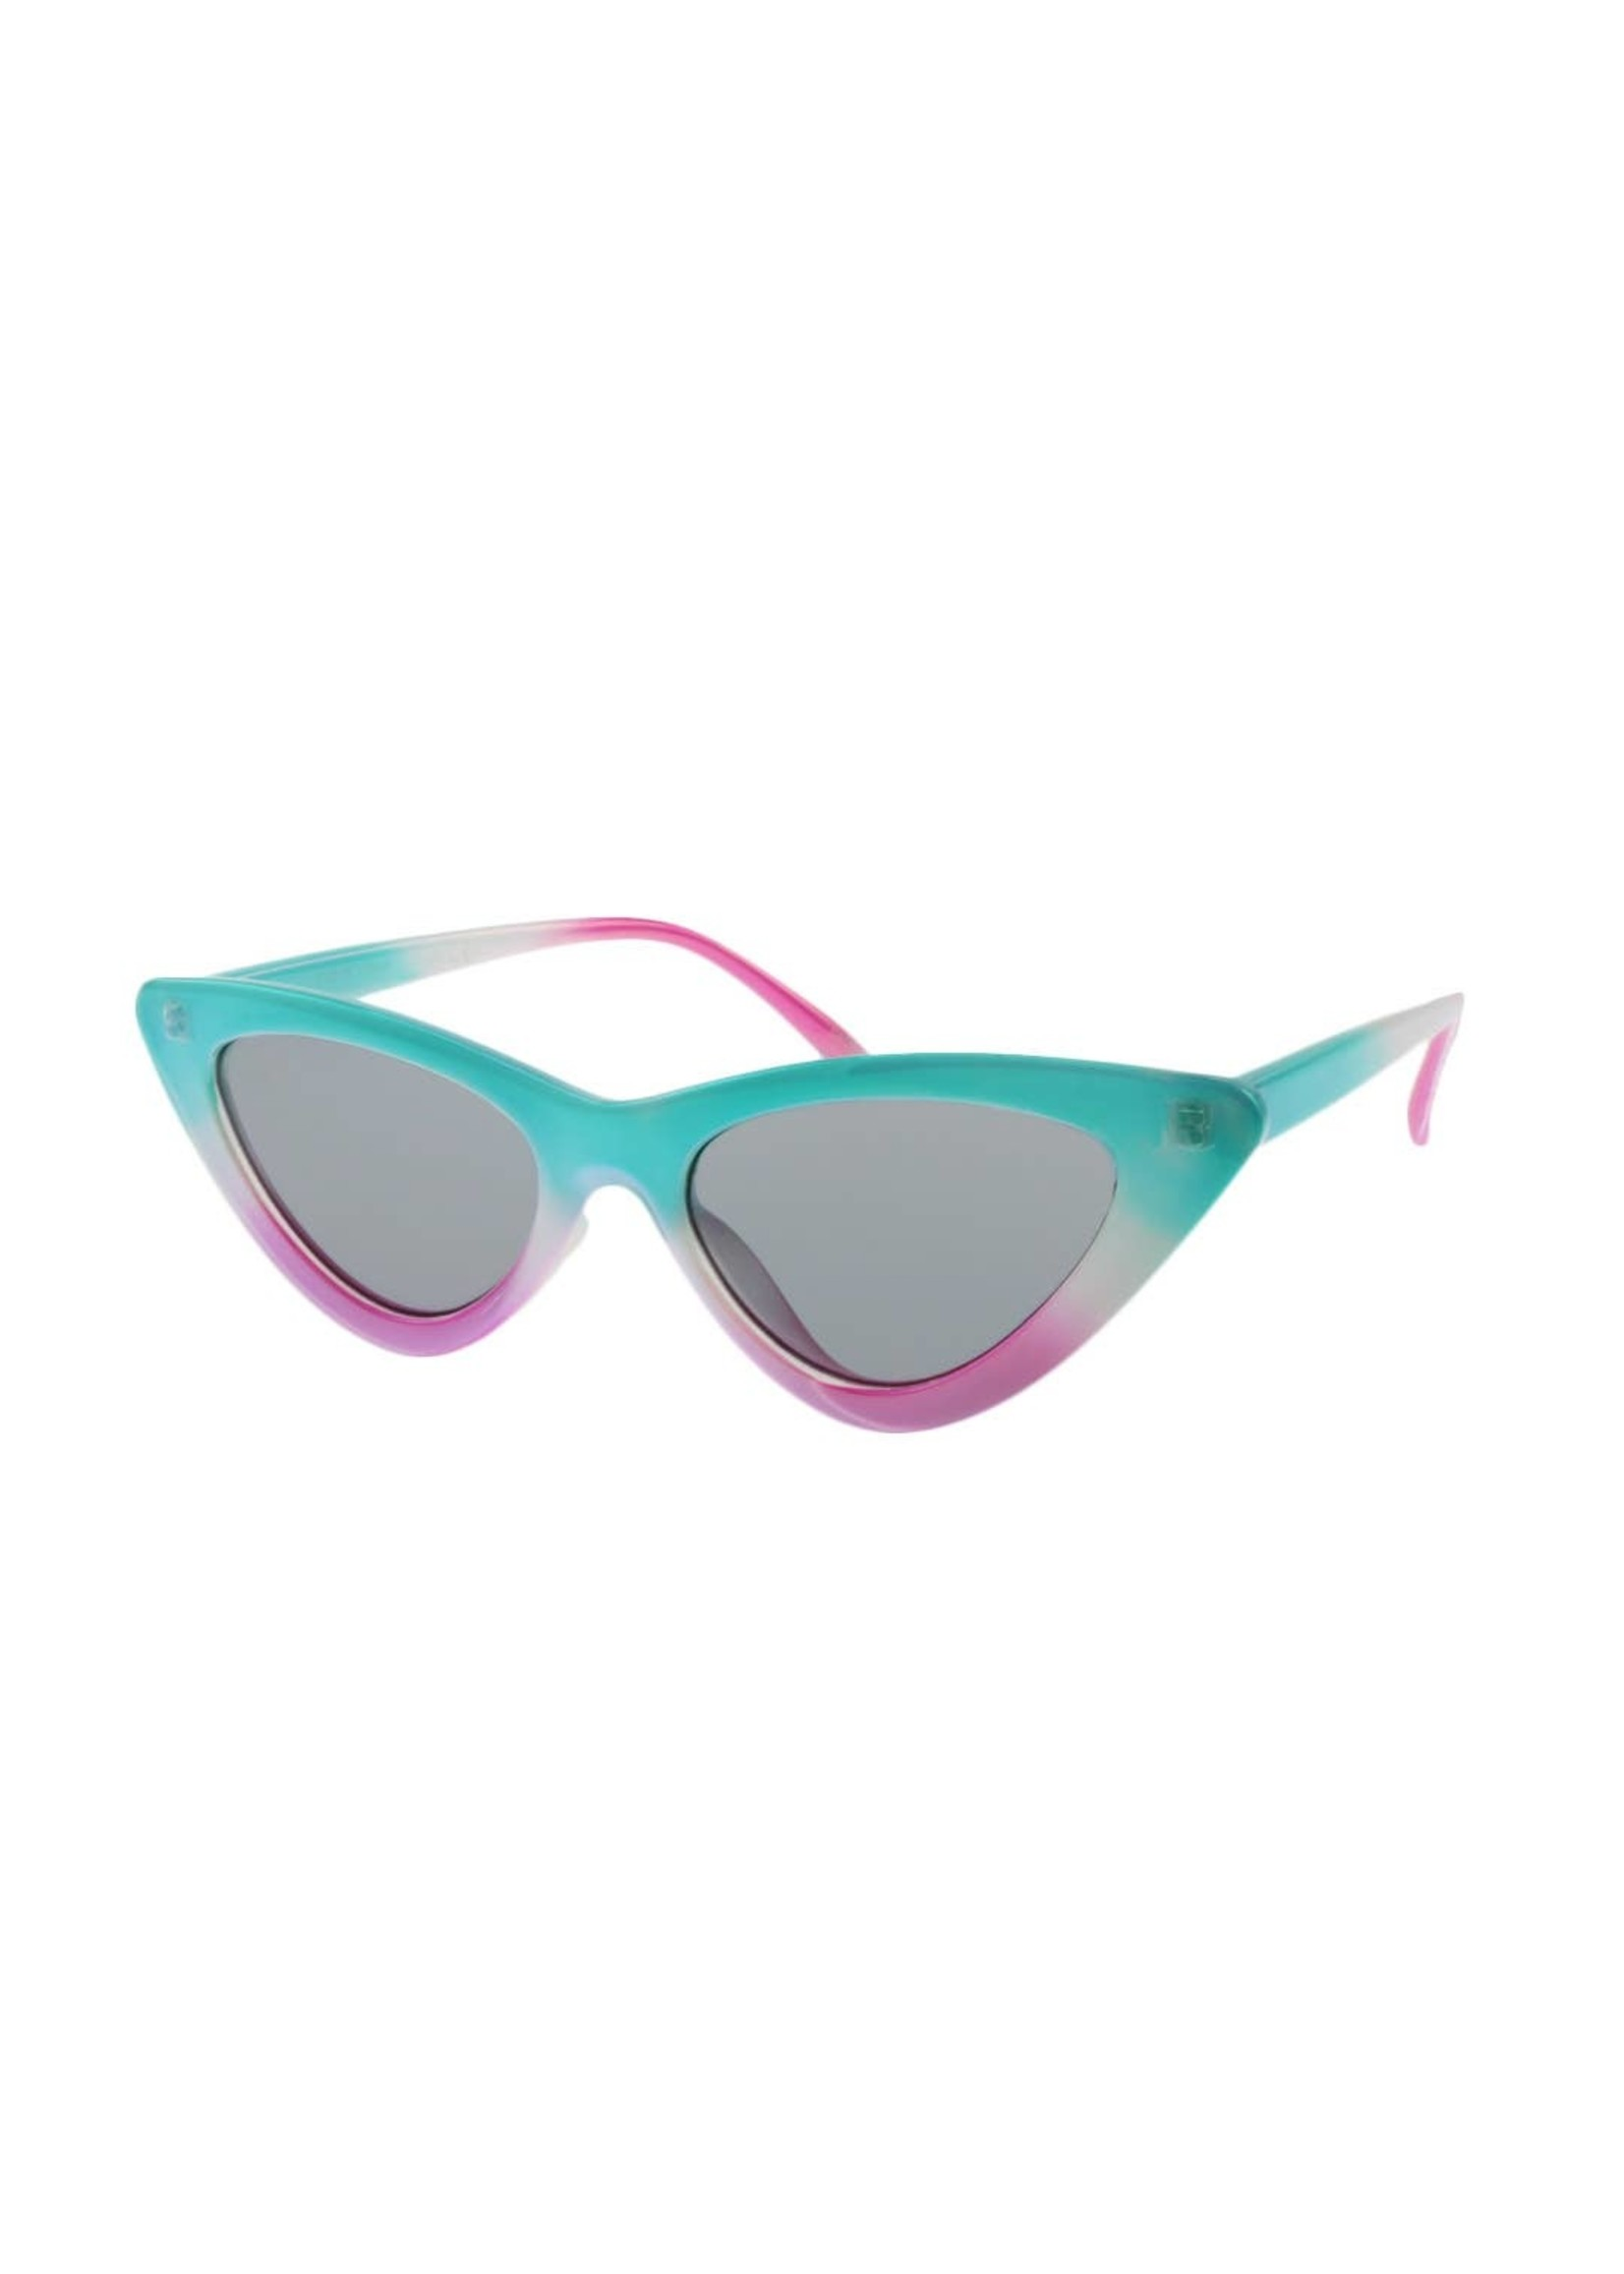 Make Believe Sunglasses Turquoise/Pink